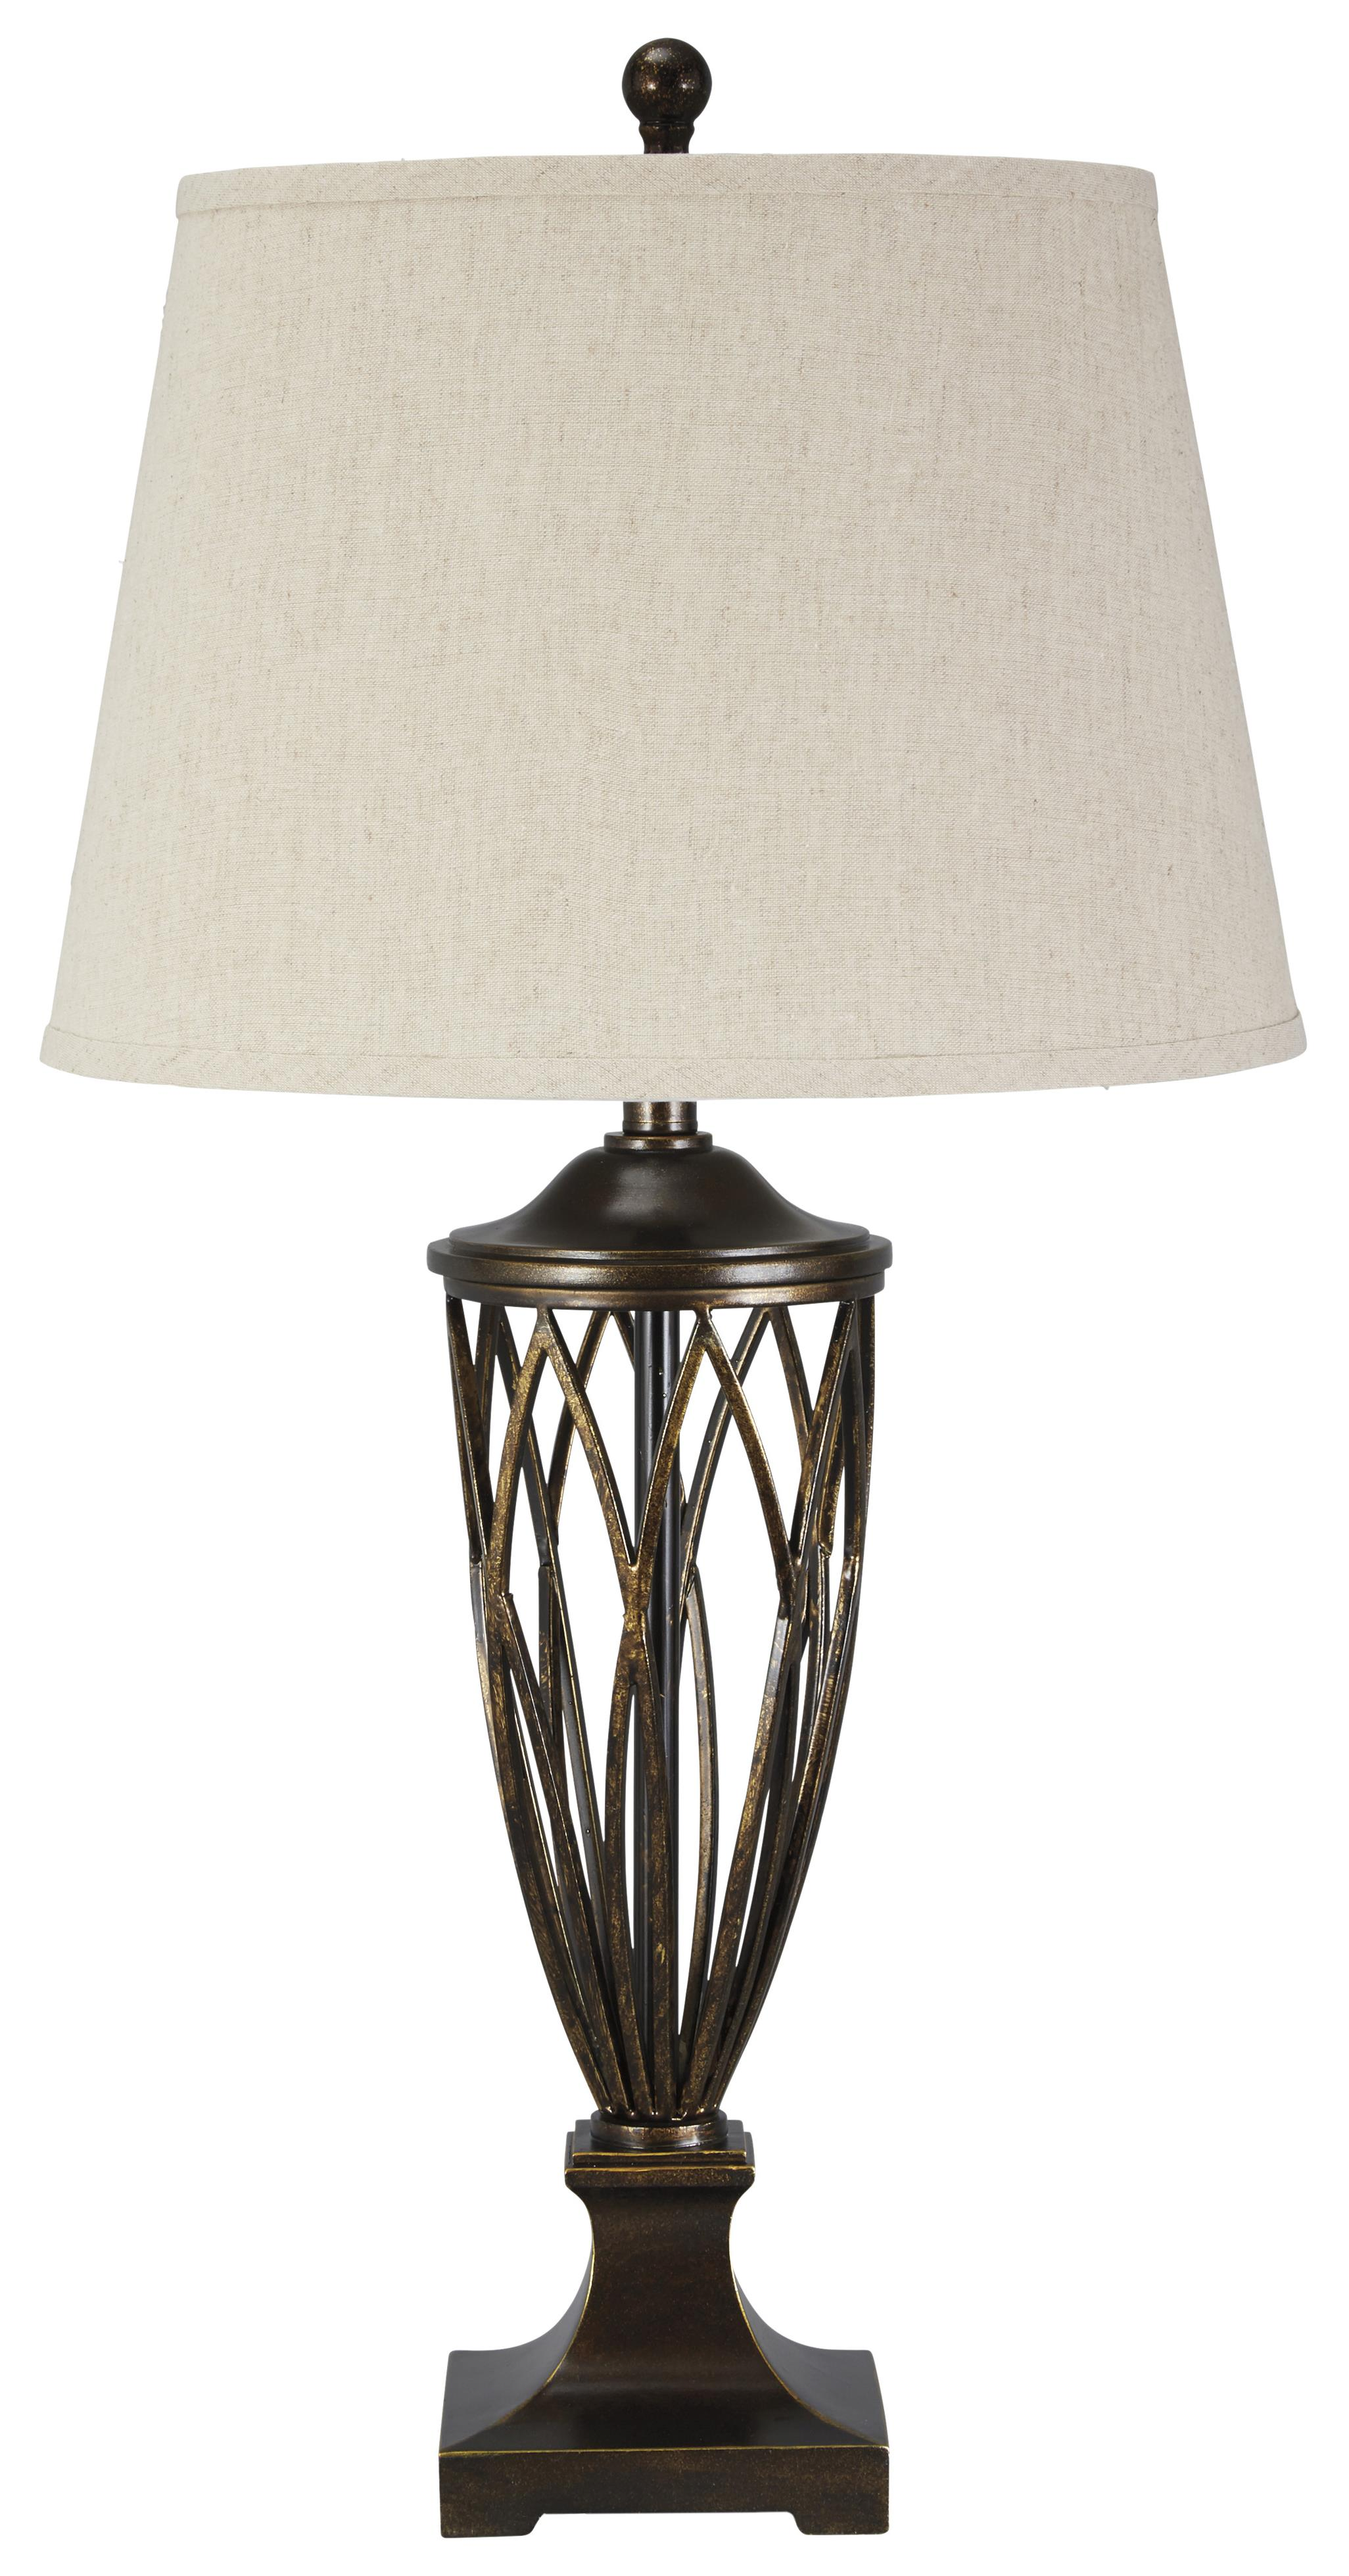 Signature Design by Ashley Lamps - Traditional Classics Makai Poly Table Lamp - Item Number: L208024